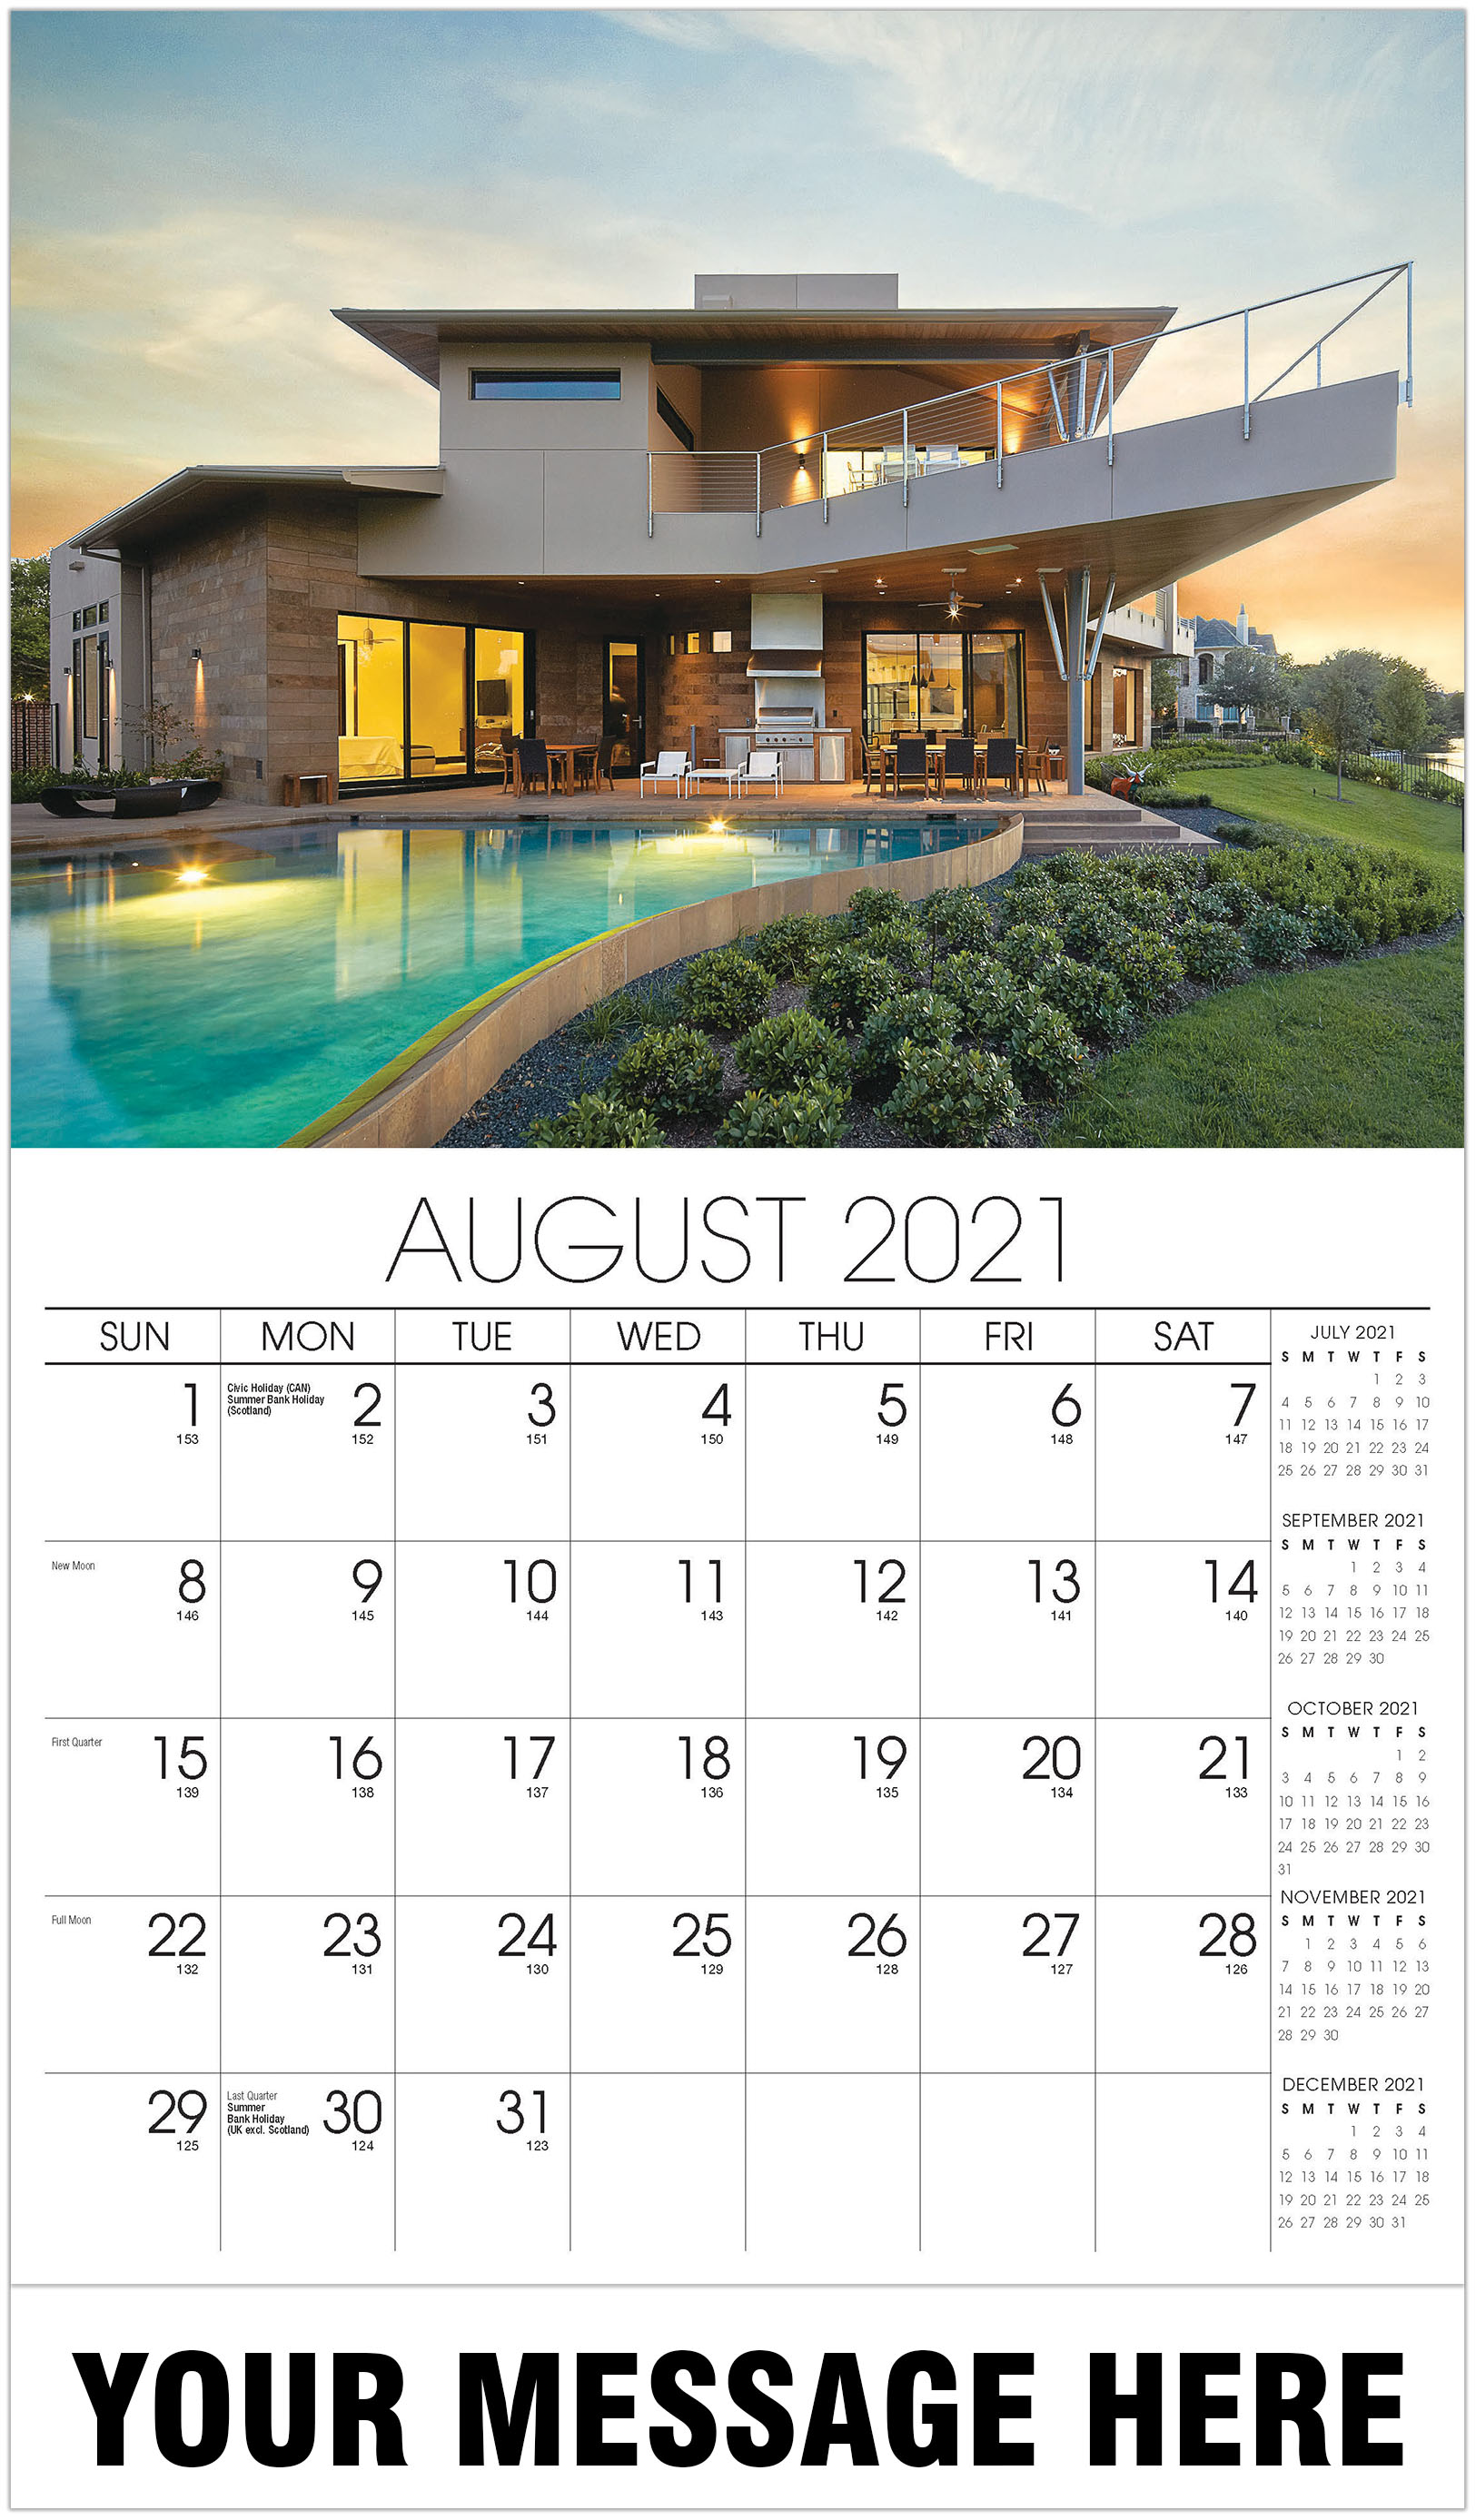 Luxury Homes Calendar - August - Homes 2021 Promotional Calendar